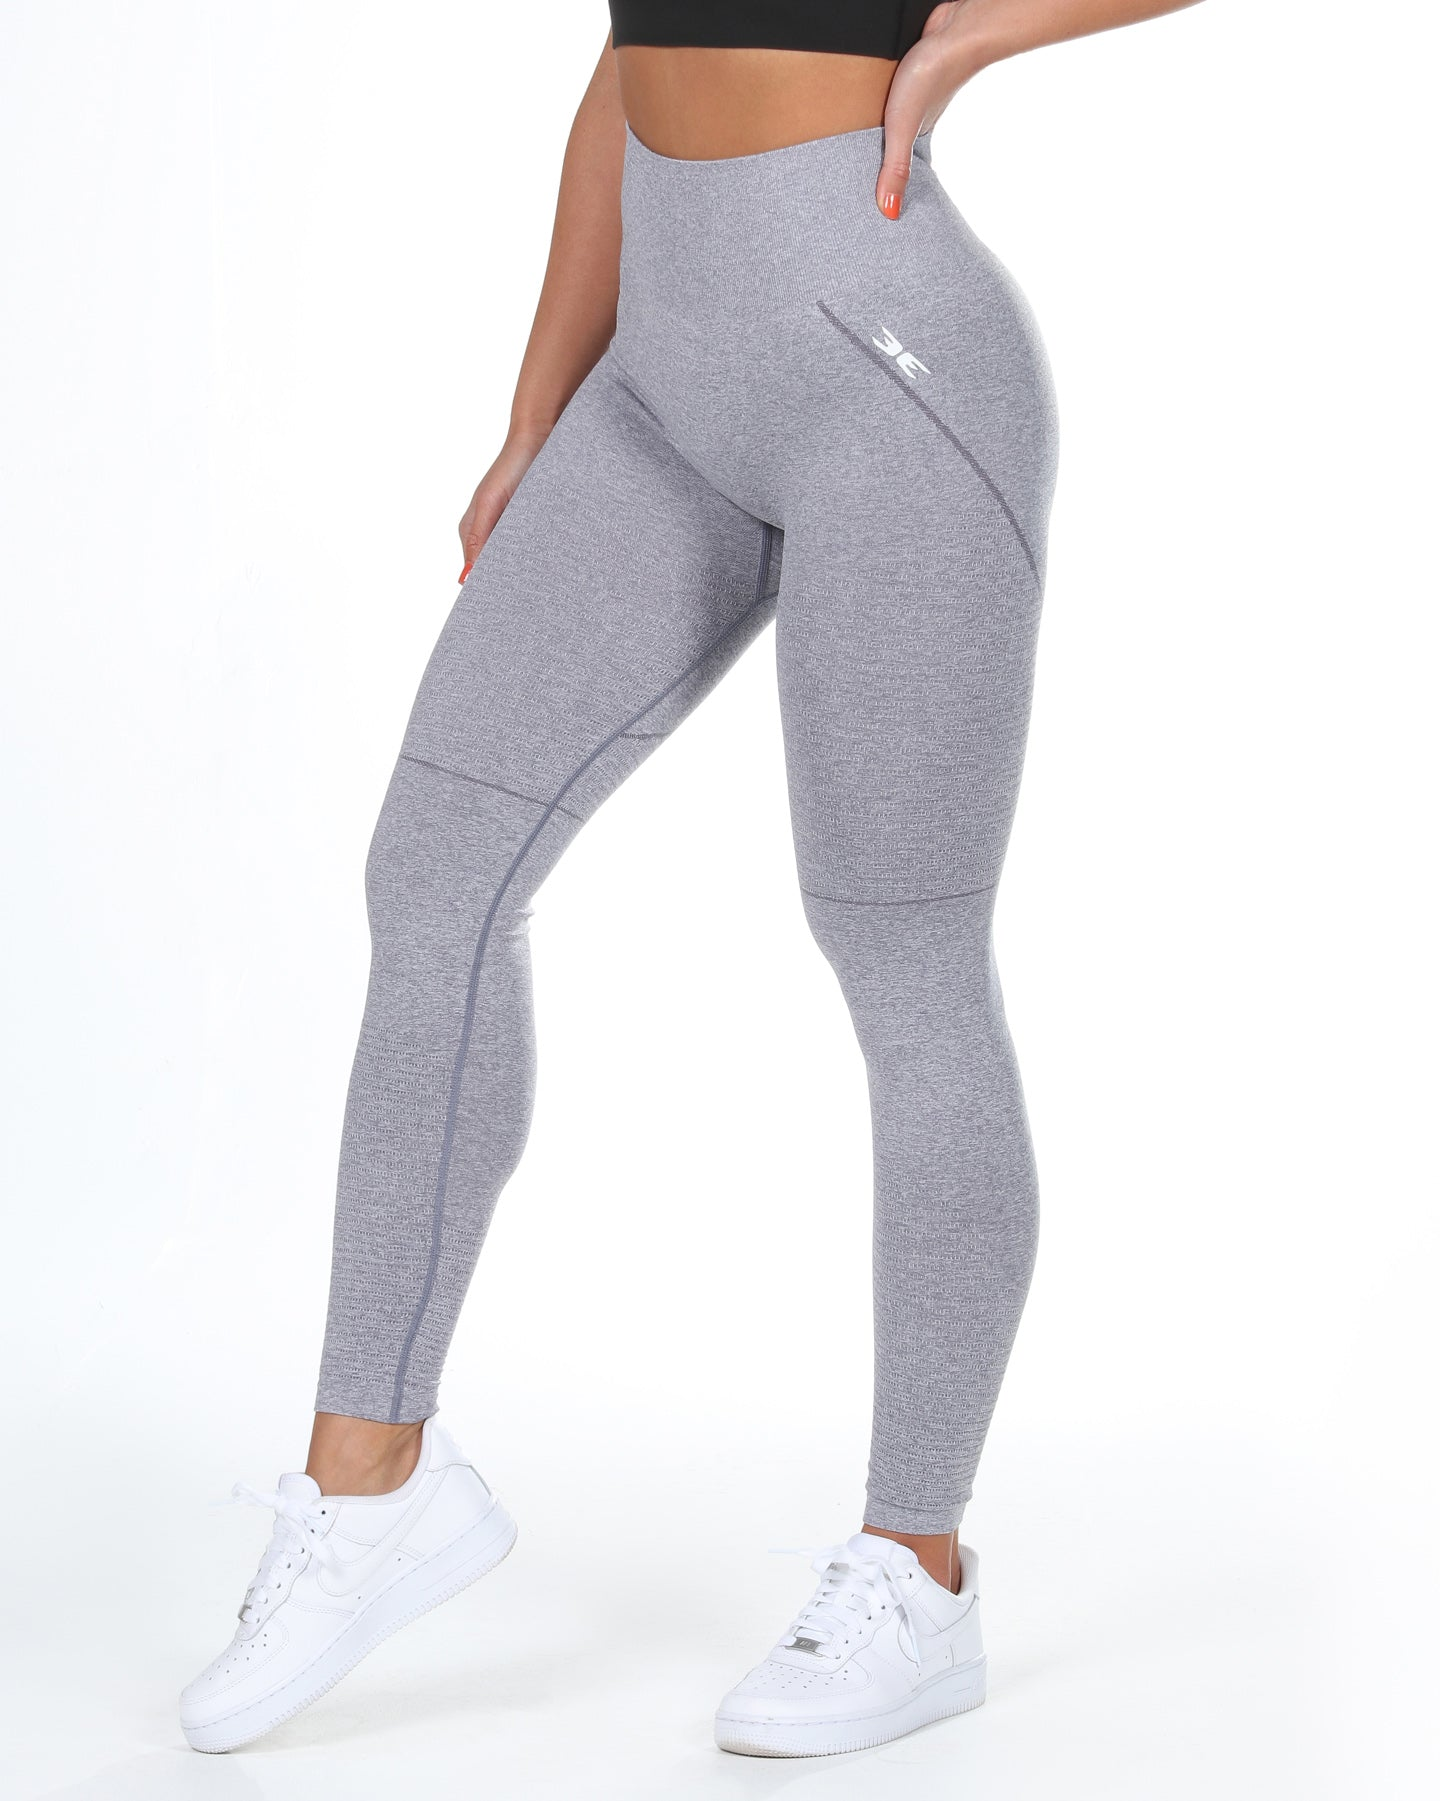 Elite Seamless Leggings - Grey Mist